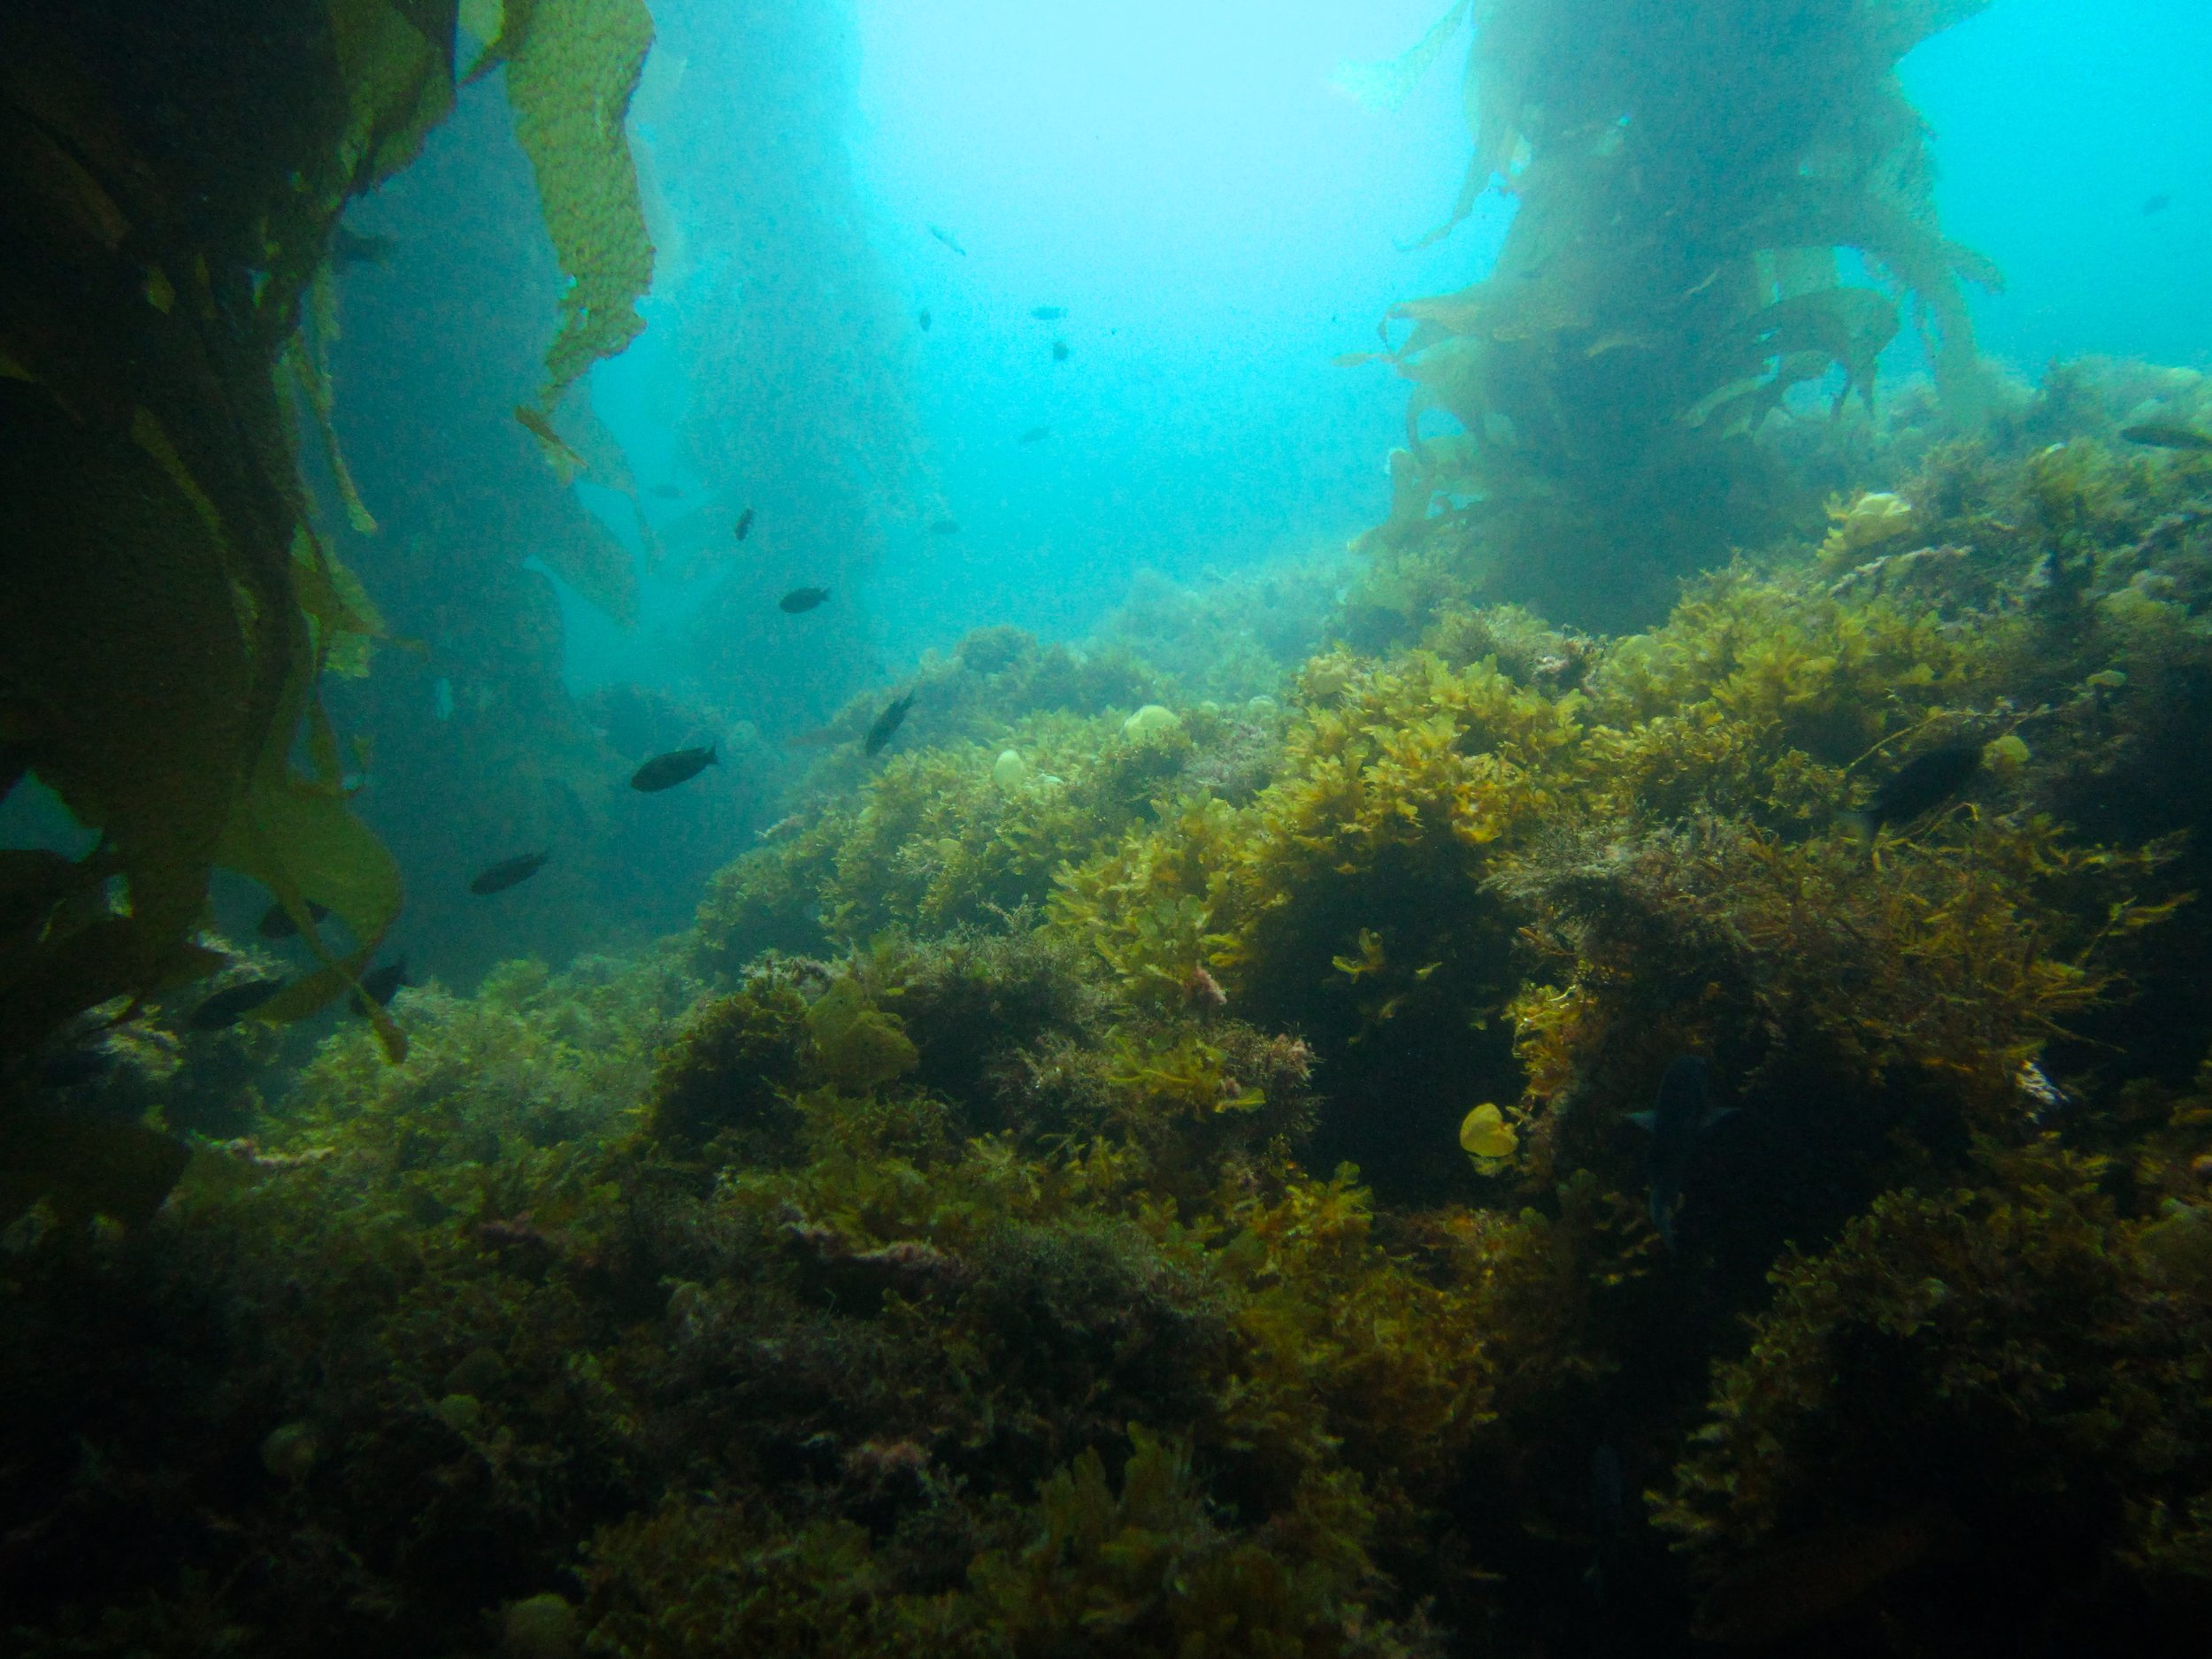 In a healthy kelp forest, the seafloor is kept relatively clear of algae that compete with kelp by grazers, such as urchins. Photo credit: Laís Lima